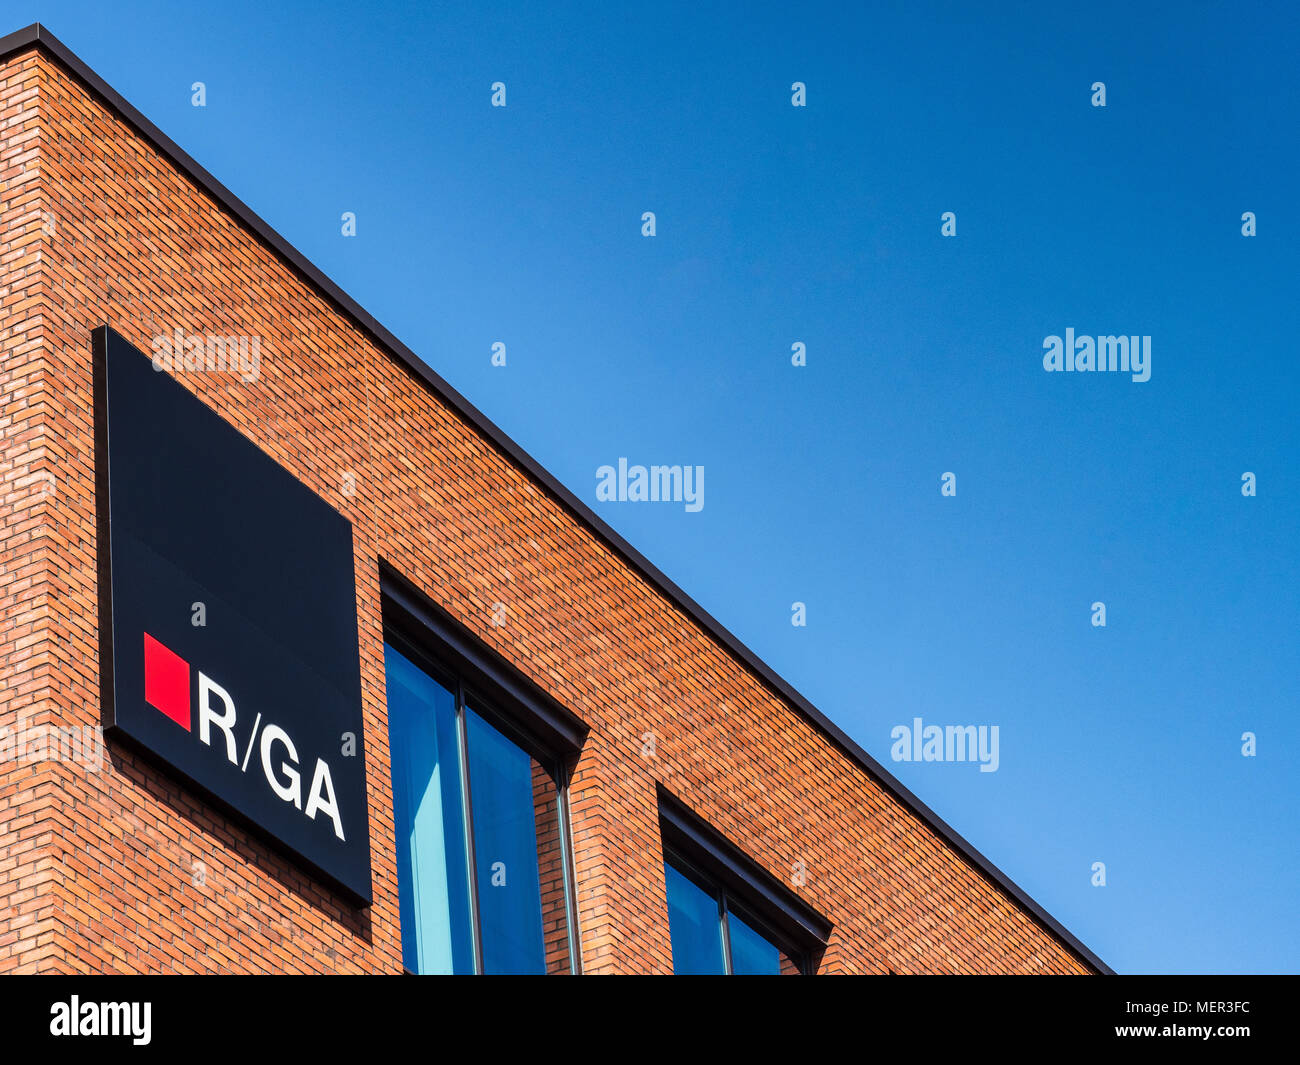 R/GA Connected by Design in Shoreditch - London & EMEA Offices of the R/GA full-service digital agency - Stock Image